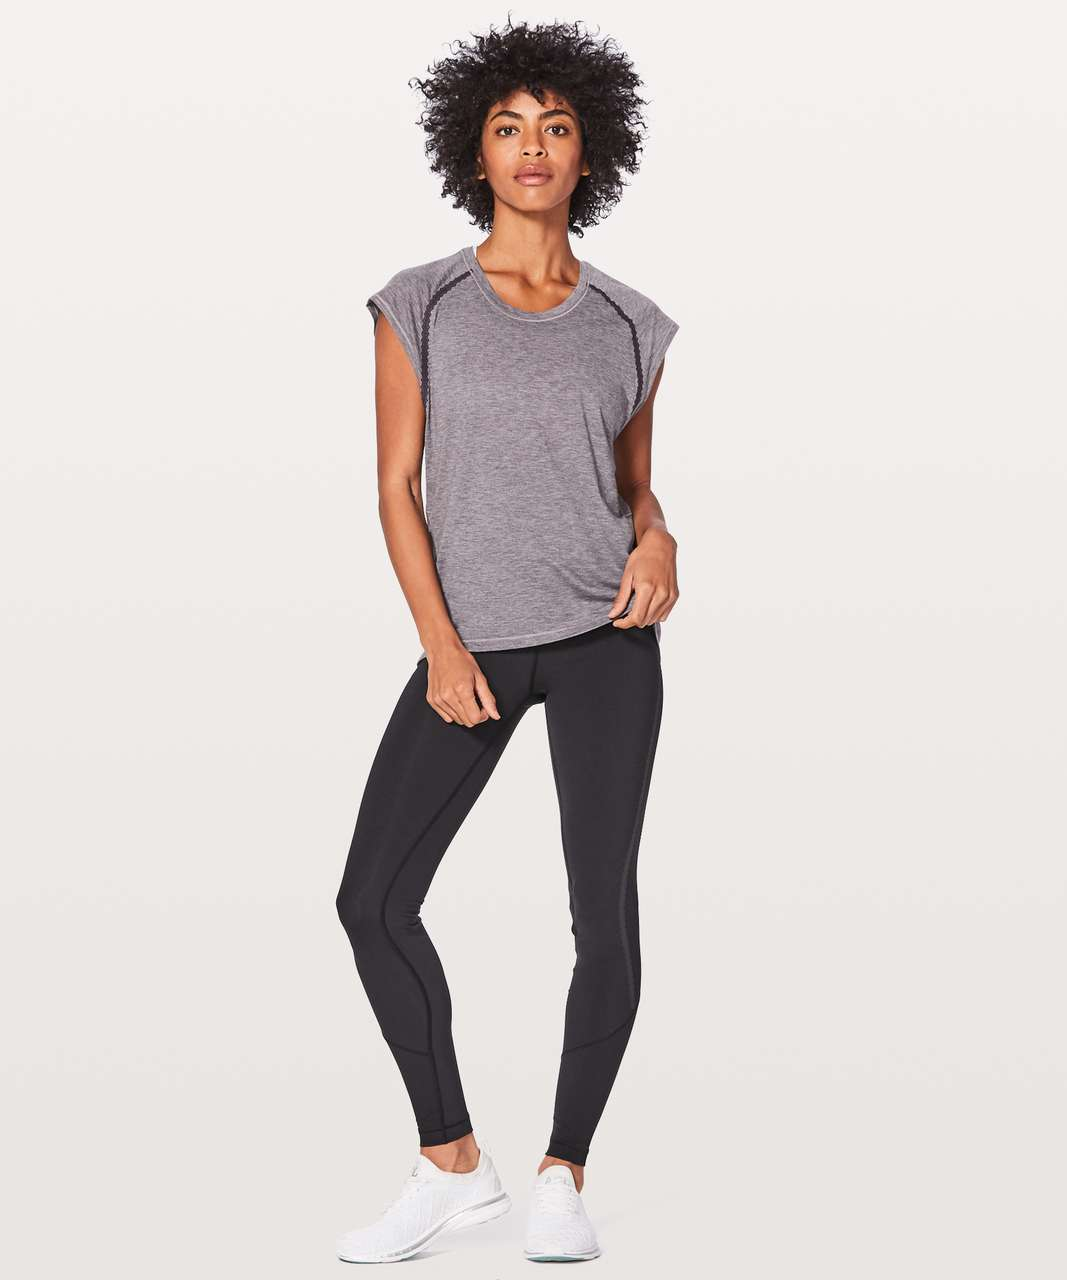 Lululemon Stop Drop & Squat Short Sleeve - Heathered Black Currant